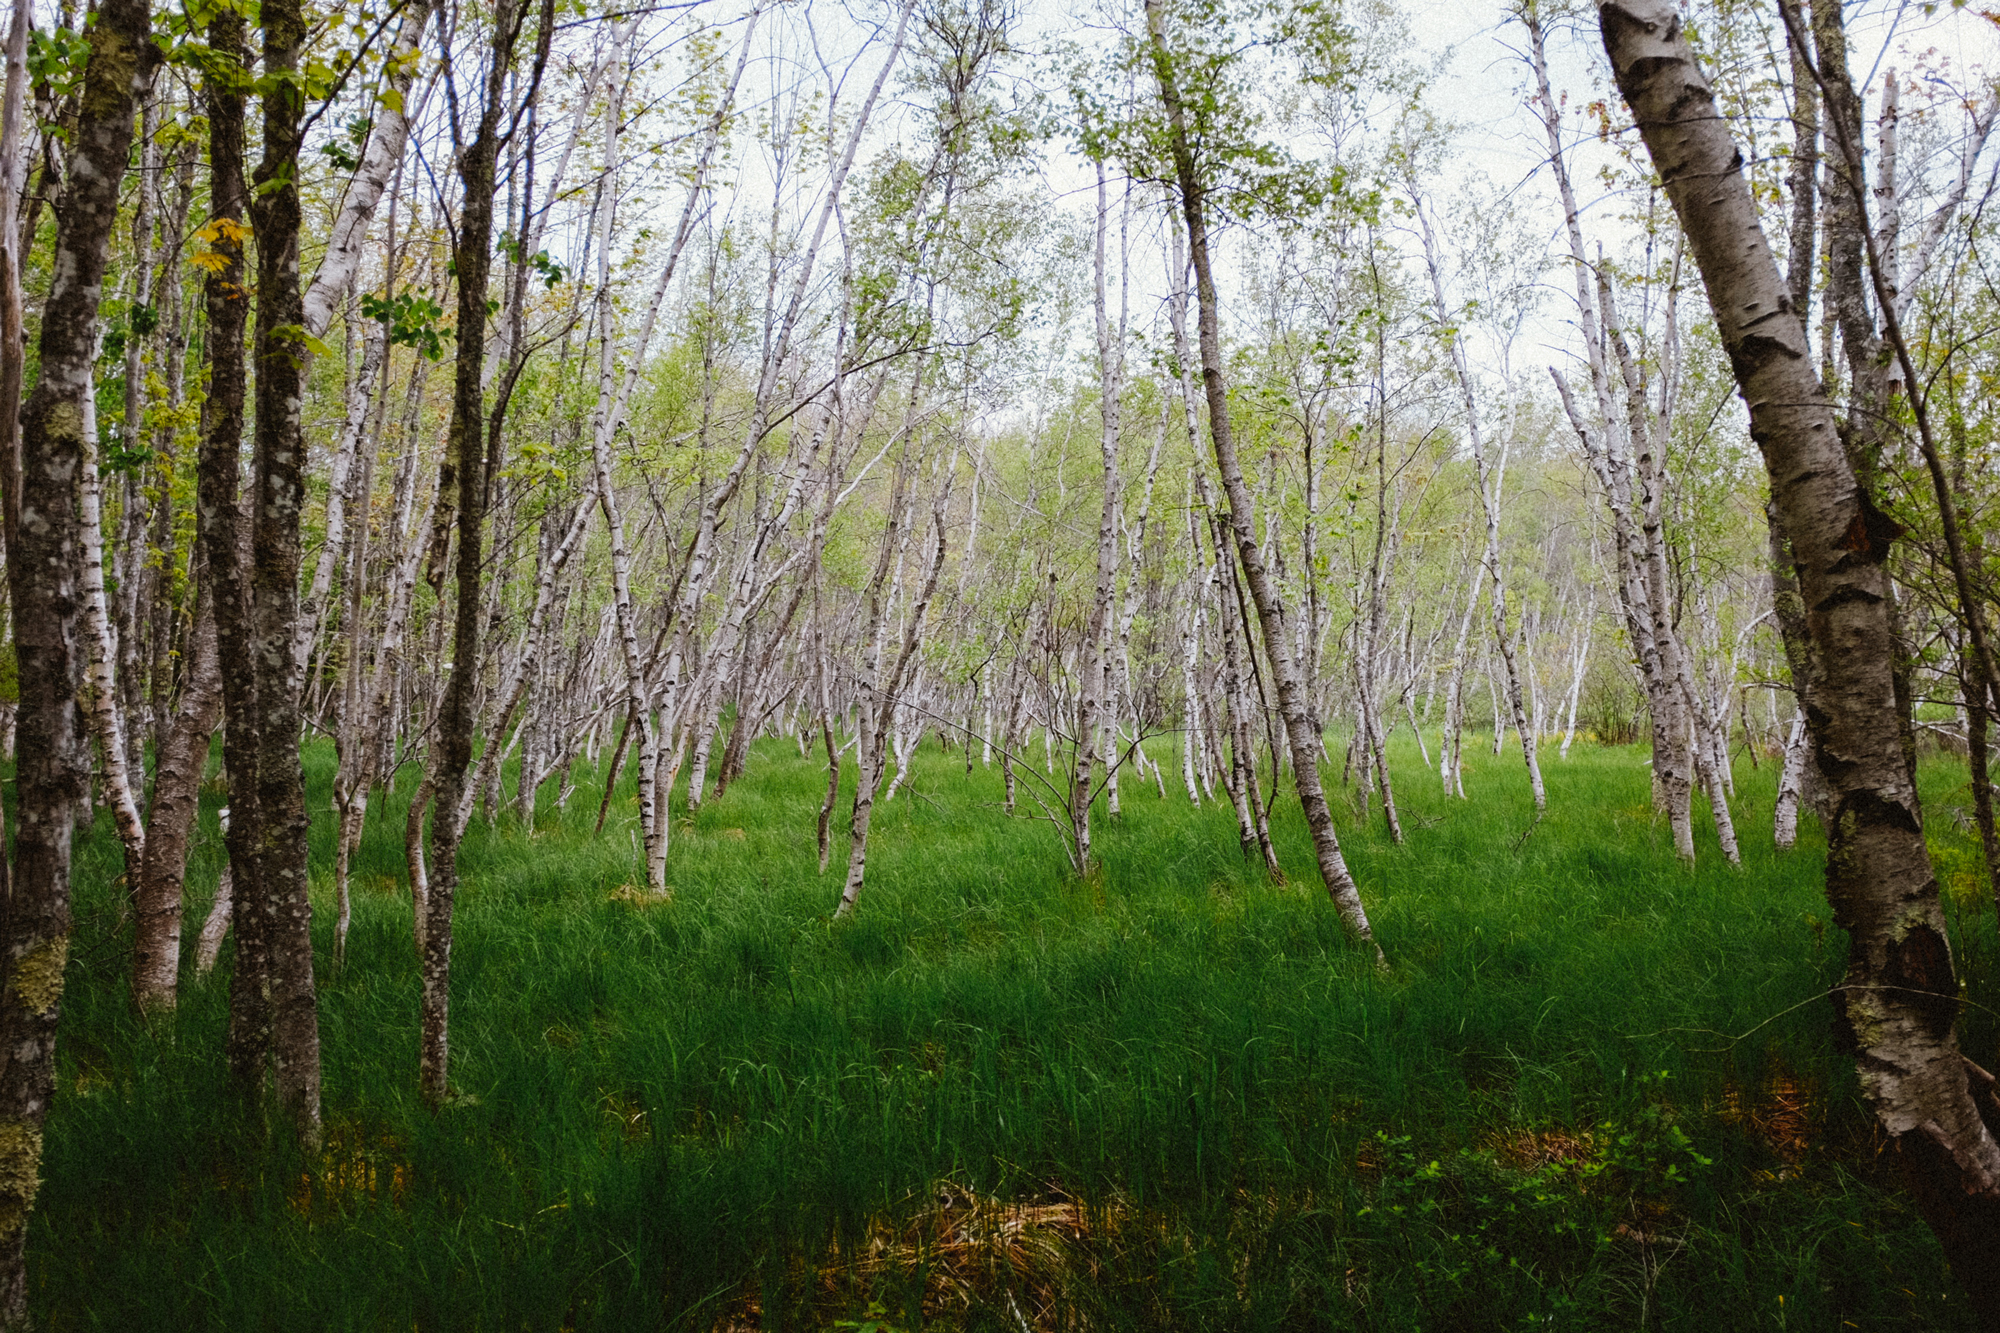 Our favorite...birch trees!